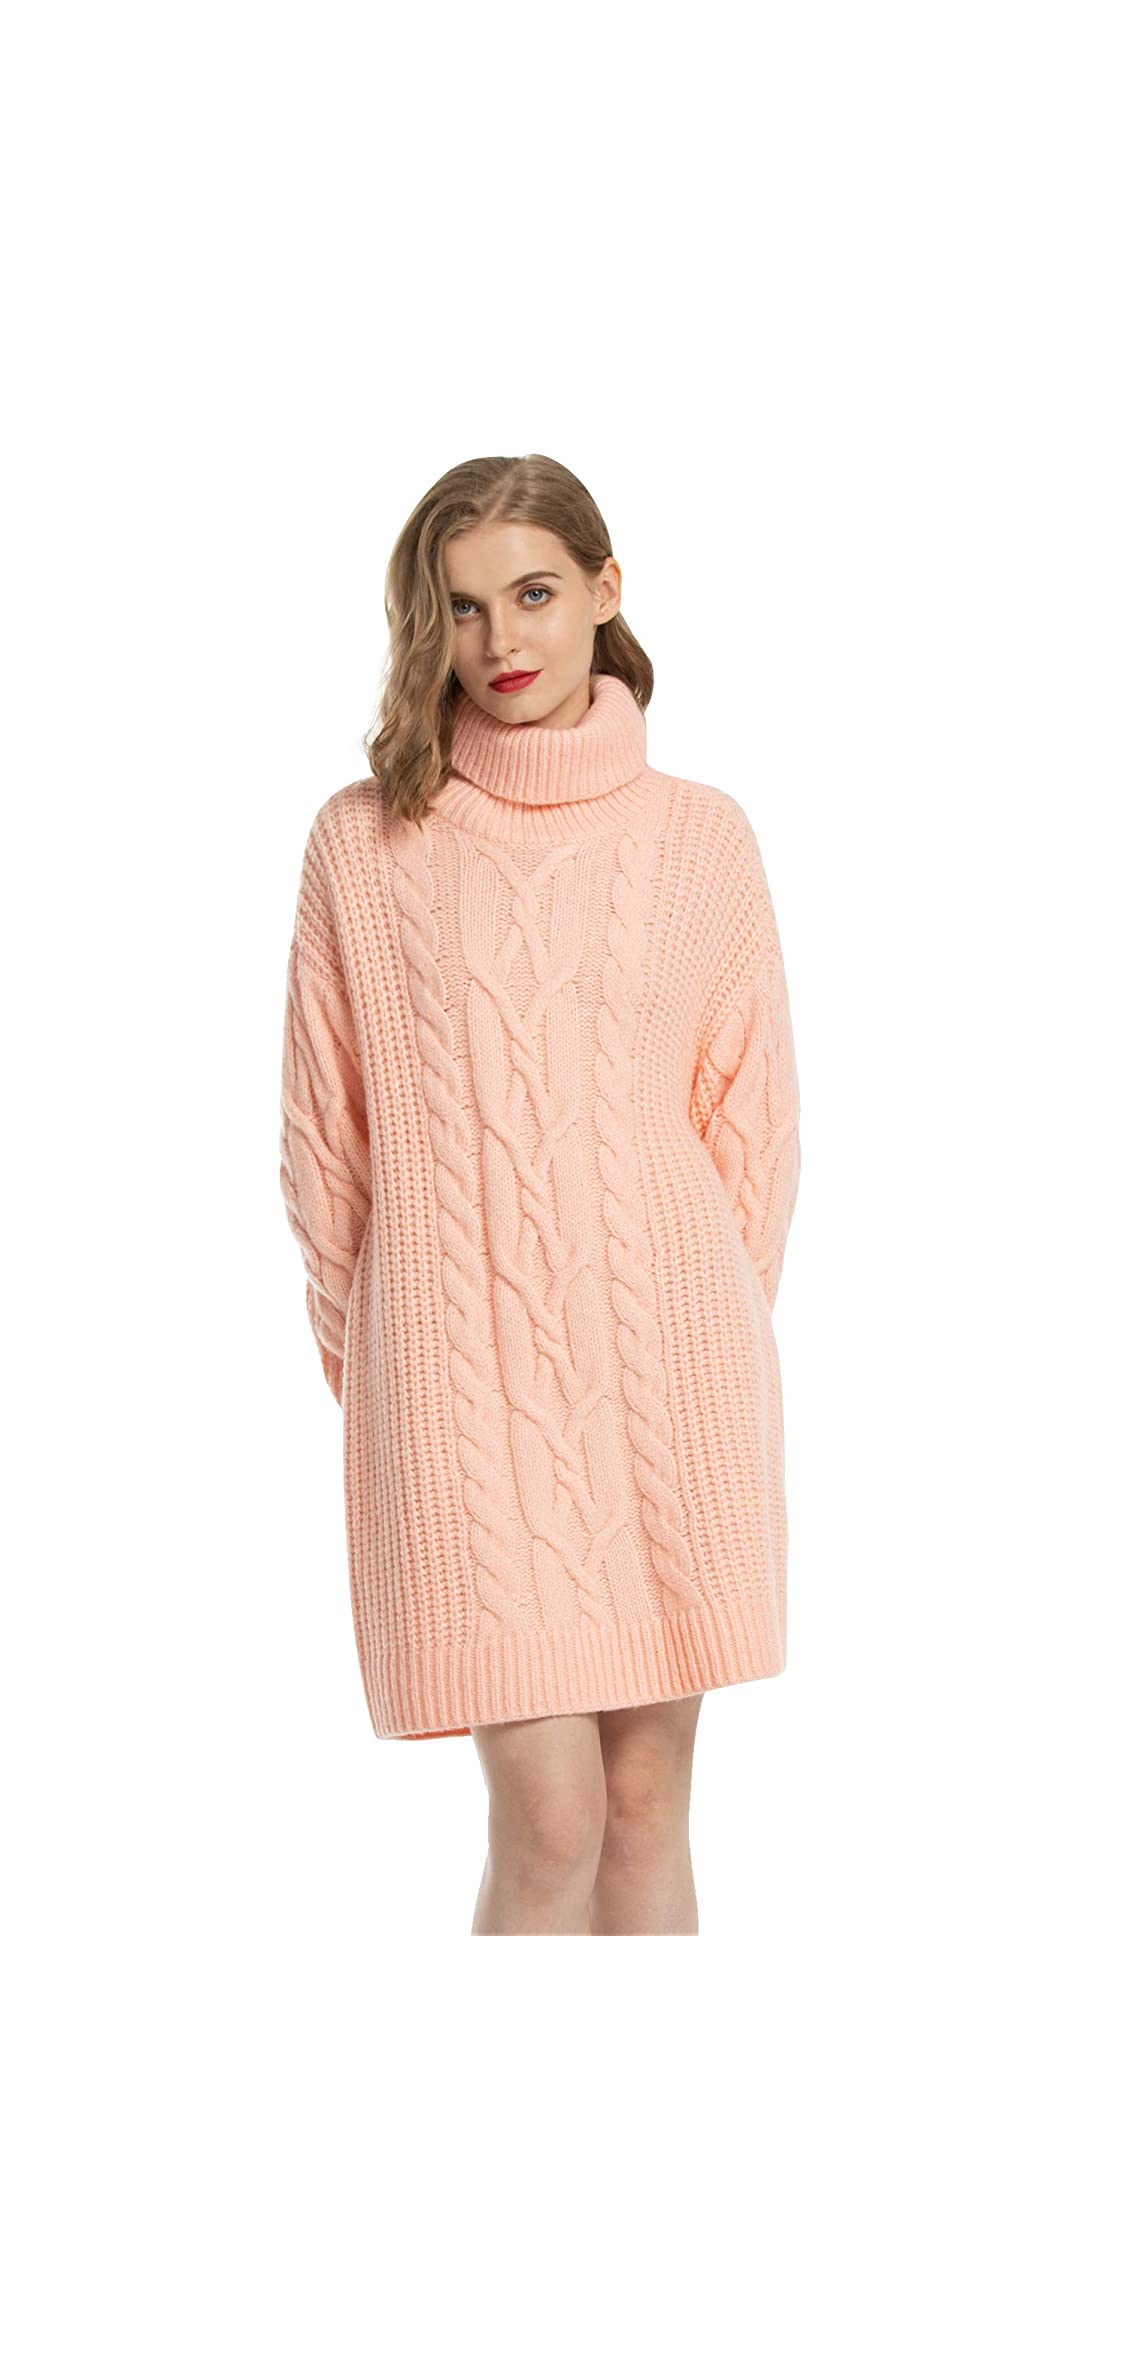 Women's Cable Knit Turtleneck Sweater Dresses Long For